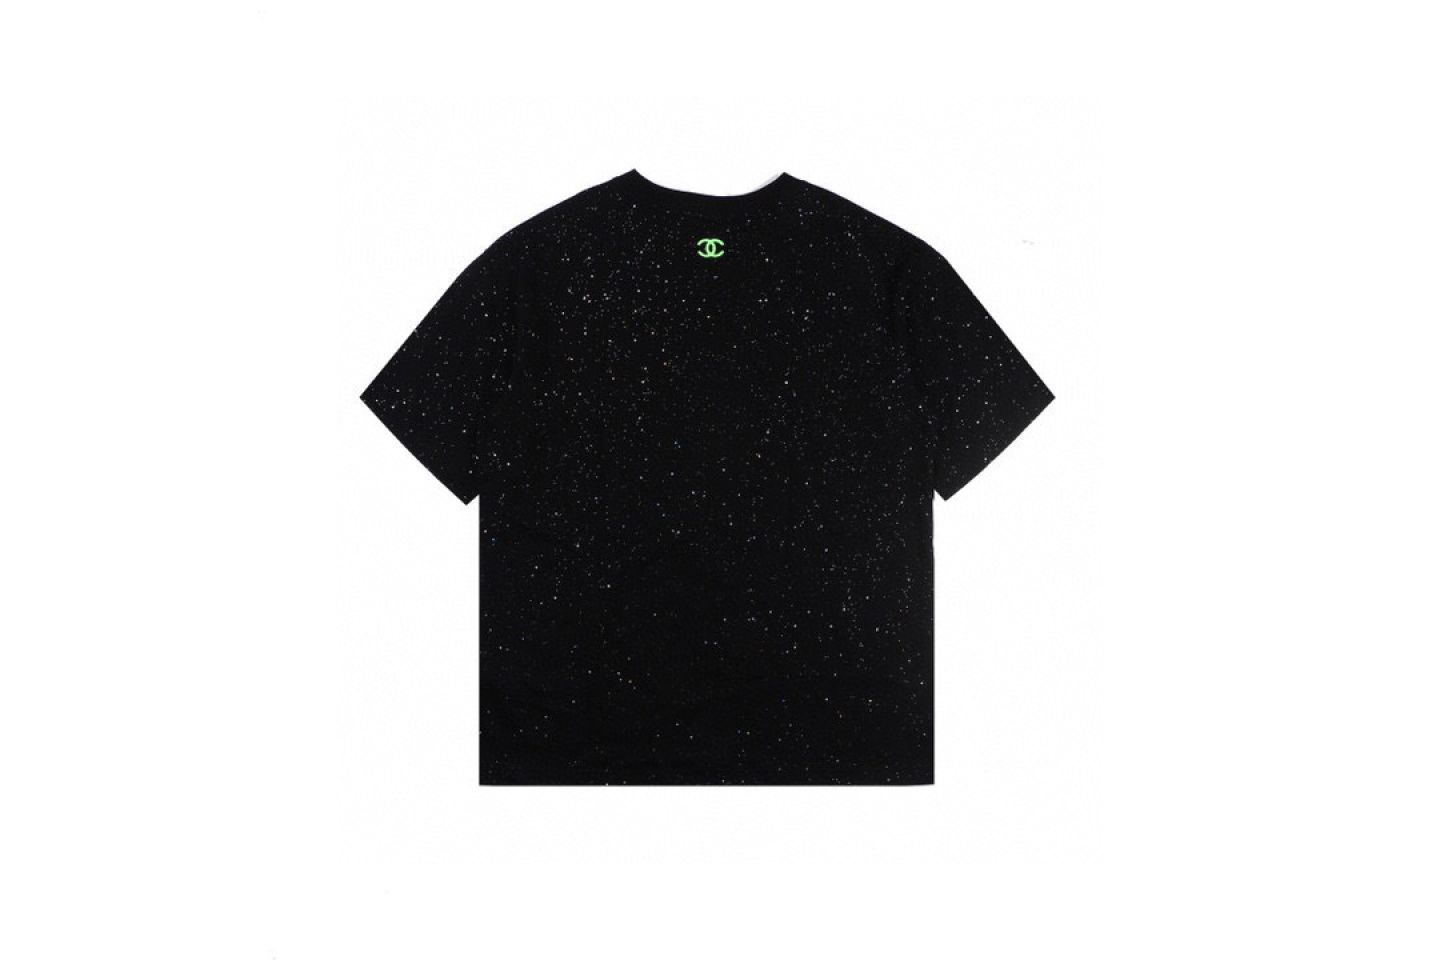 Shirt CHANEL20Ss starry green fluorescent embroidery short sleeve 5 chanel20ss_starry_green_fluorescent_embroidery_short_sleeve__5